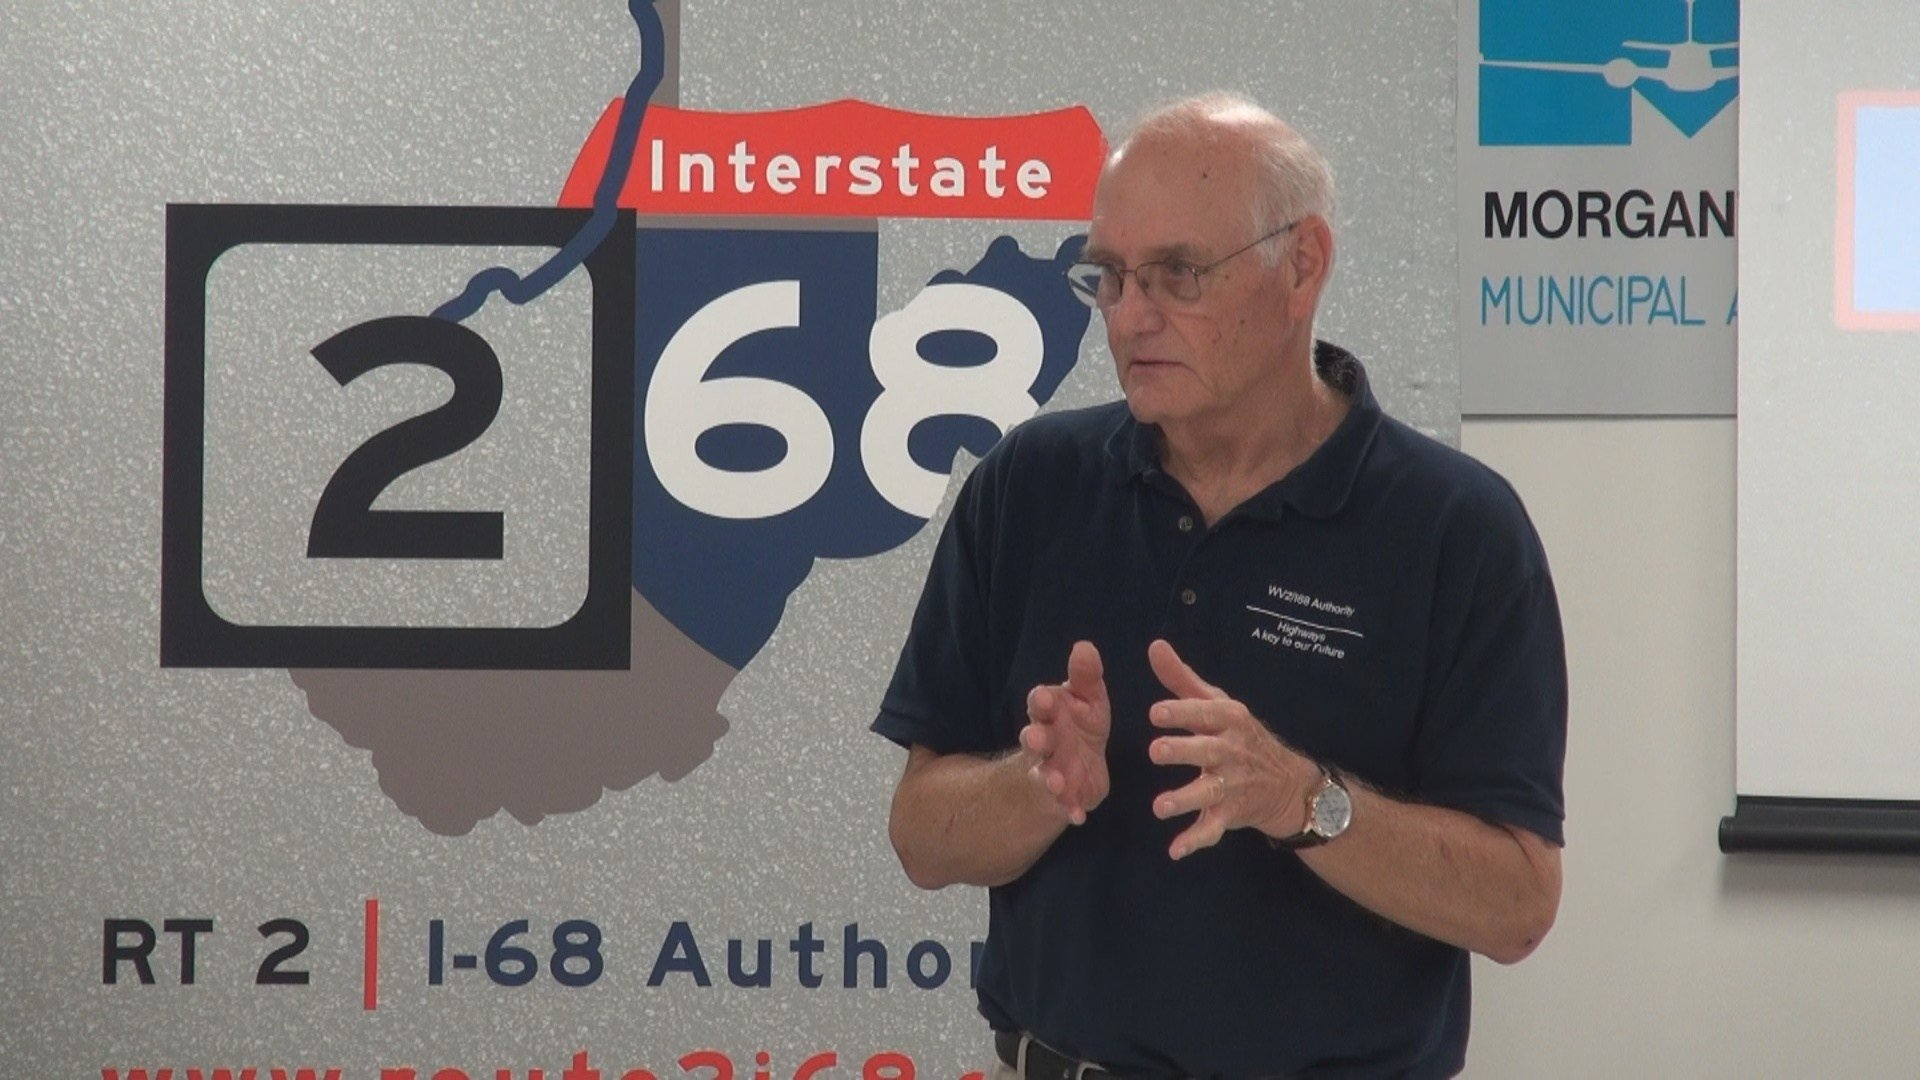 Route 2 I-68 Authority Executive Director, Charles Clements